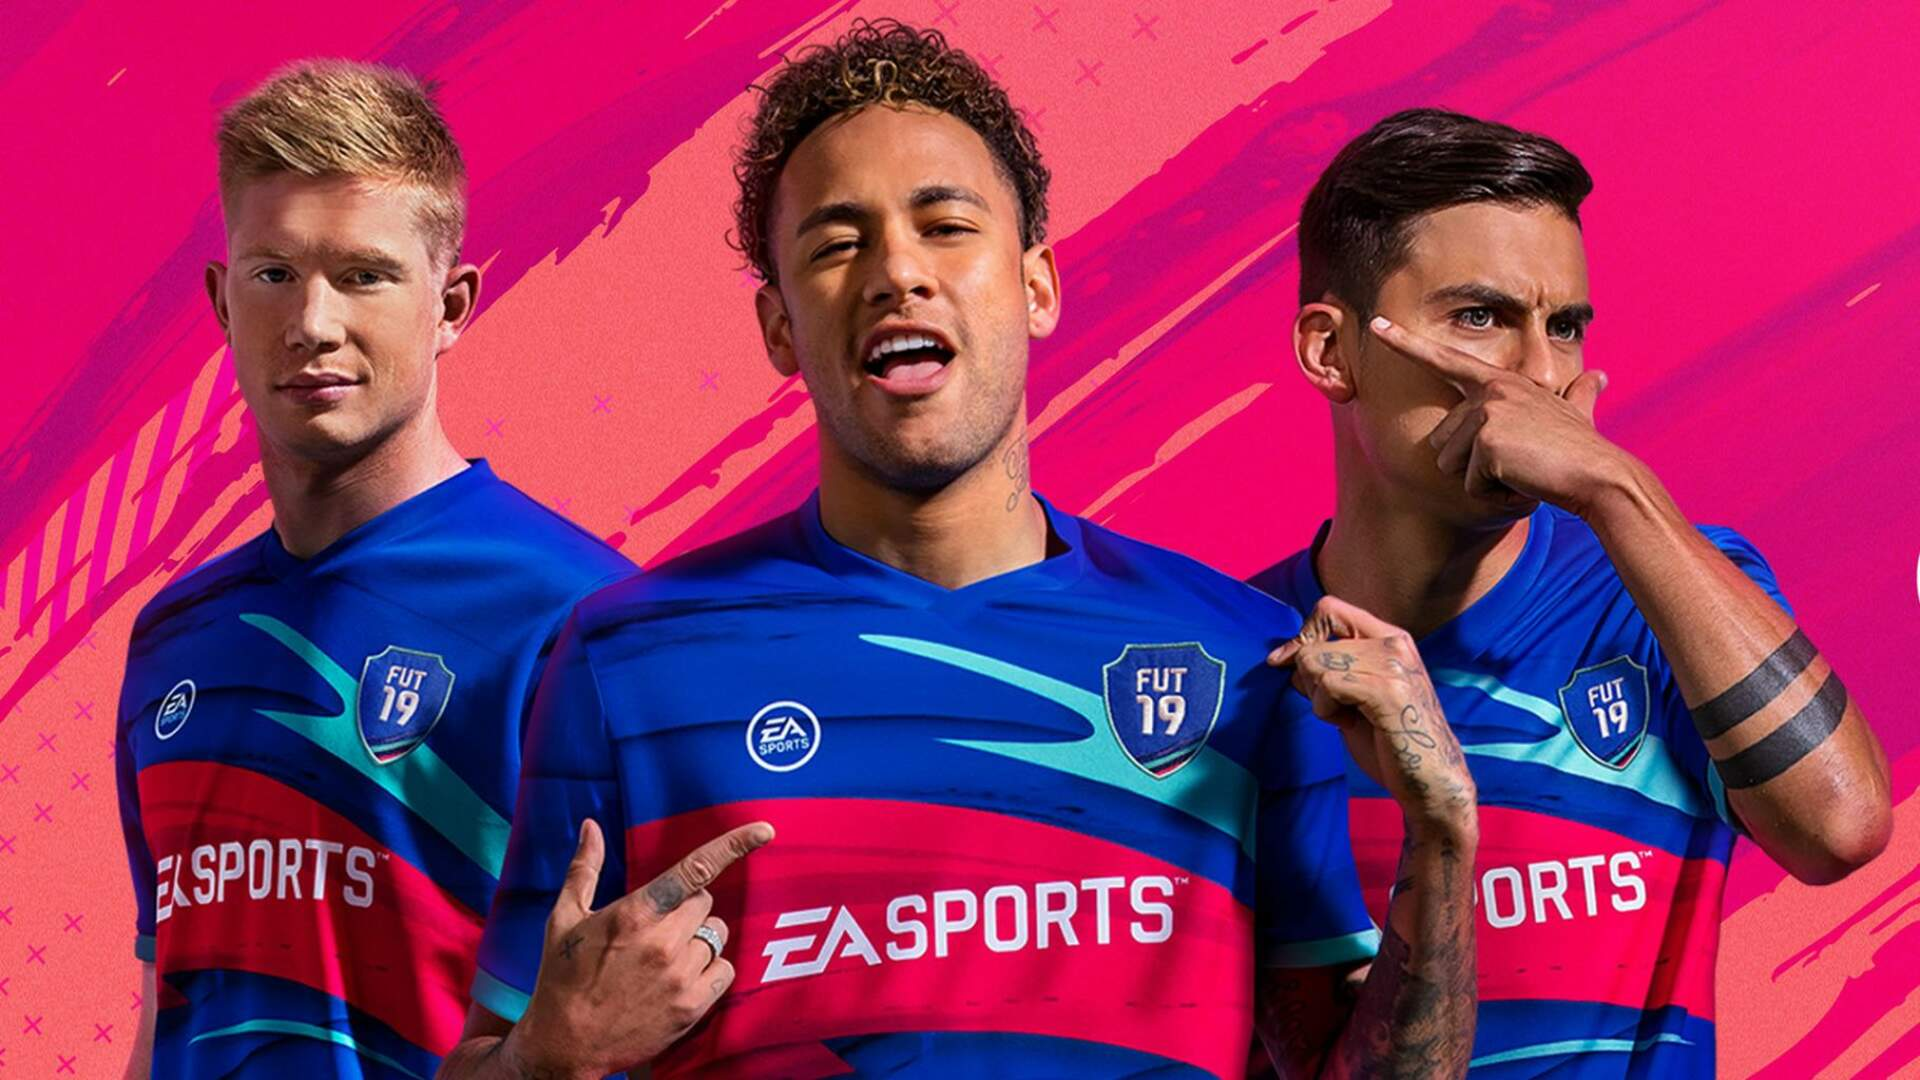 FIFA Neymar Cover is Not FIFA 20 Cover, EA Confirms